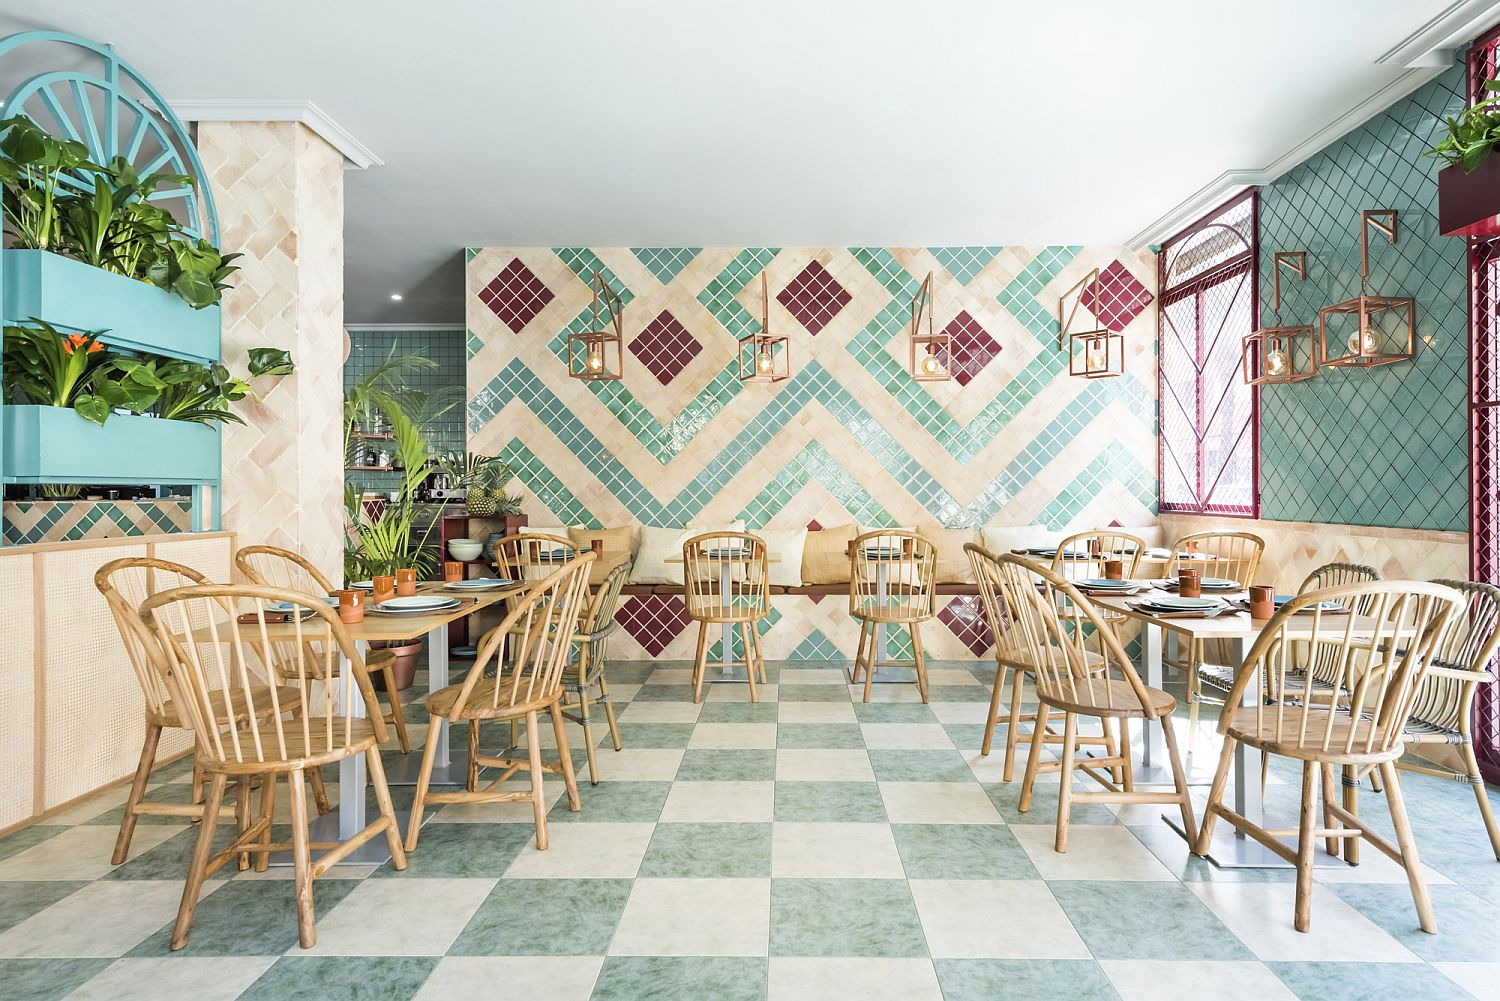 Tiled background and natural light help fashion a stunningly unique pizzeria